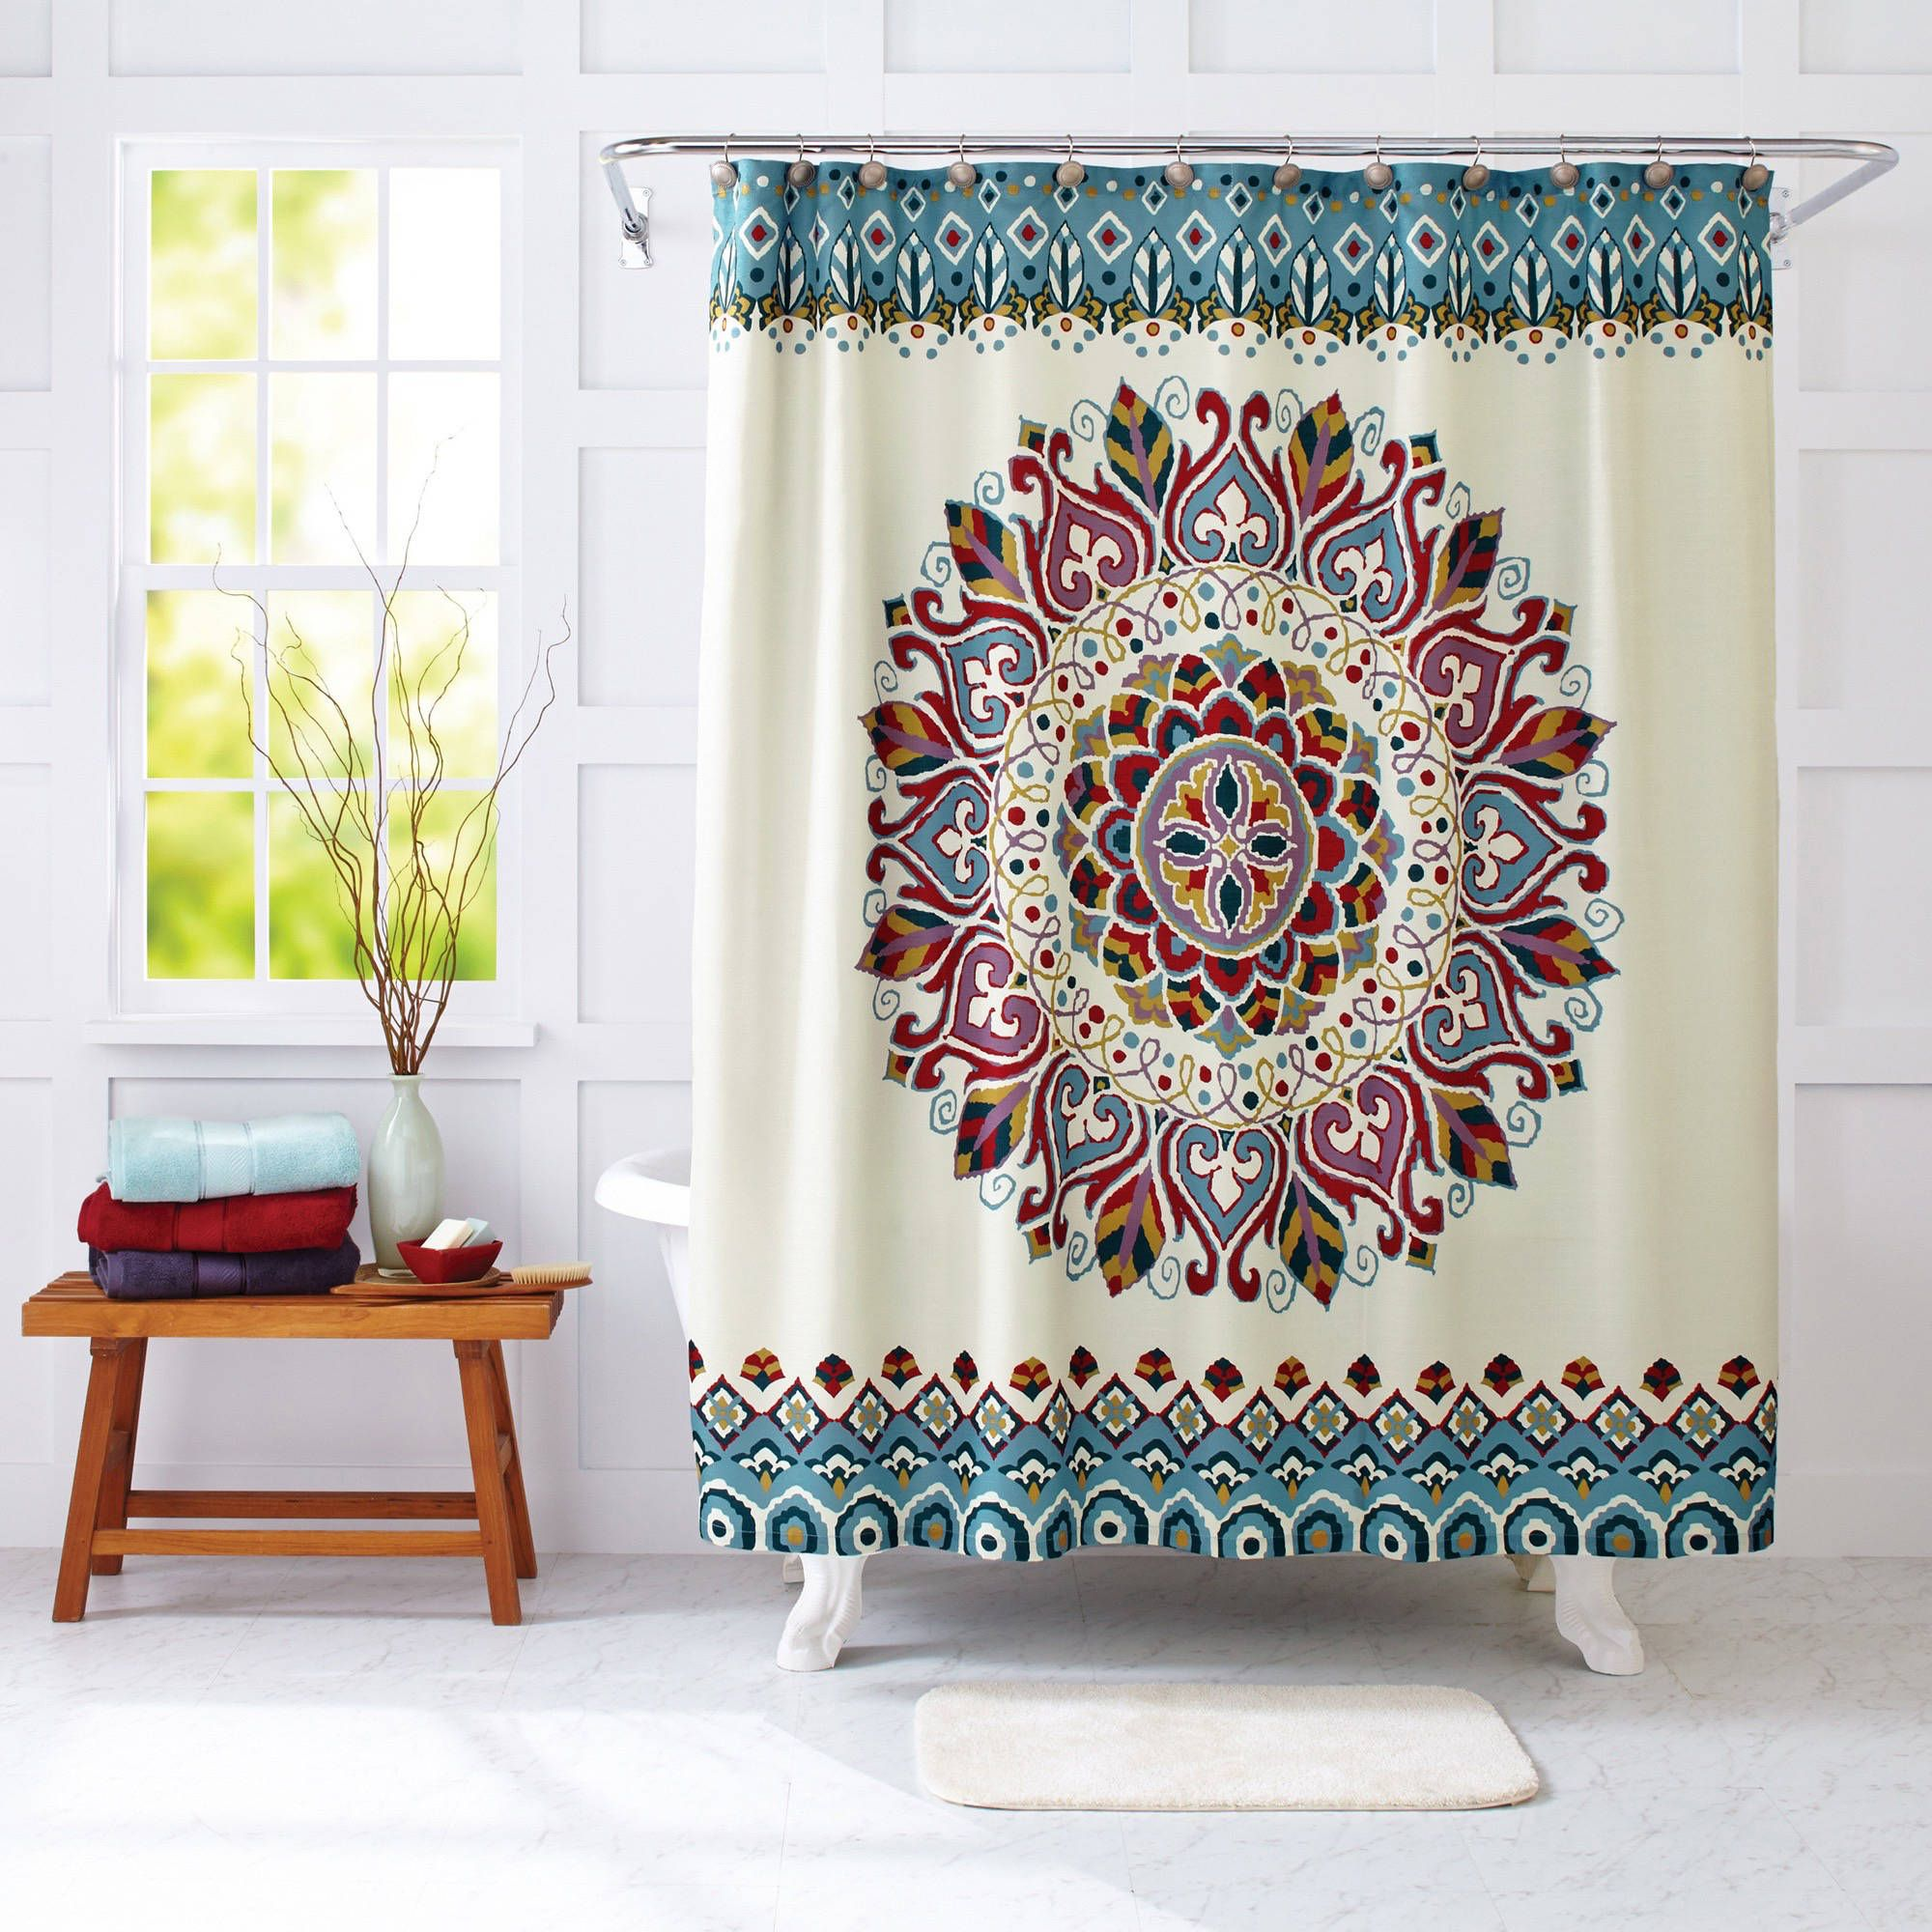 Choosing The Best Shower Curtain, Check It Out! | Shower curtains ...